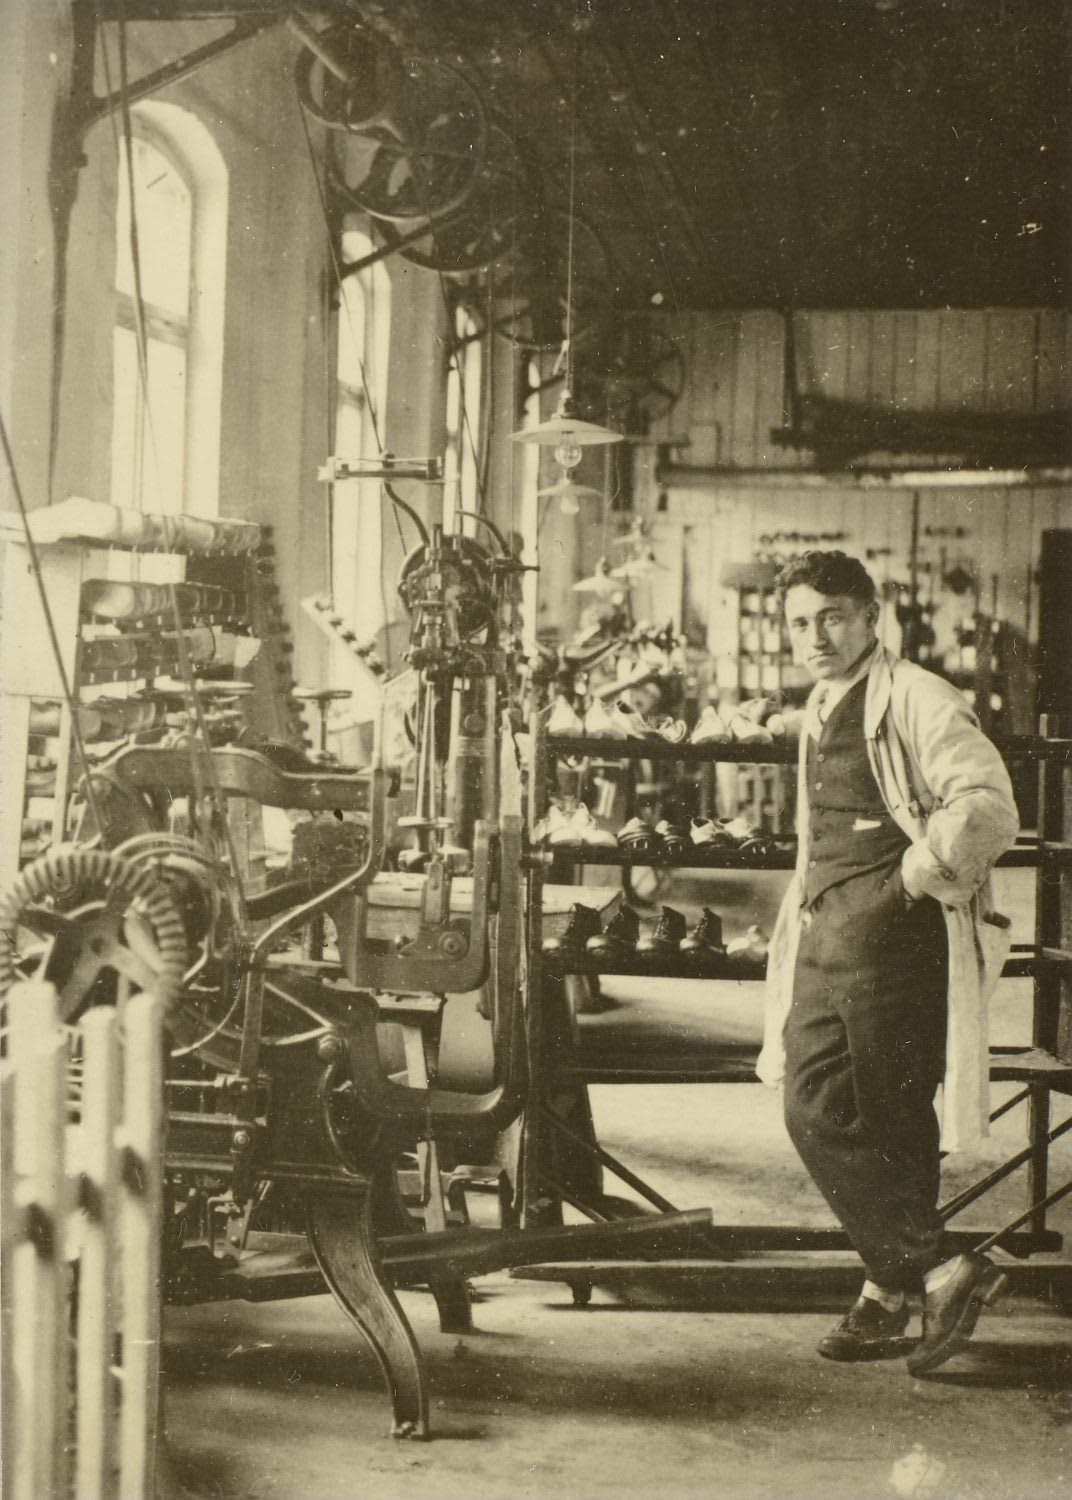 Man wearing lab coat standing next to machinery in a factory, Adolf, Dassler, Adi, adidas, sports, shoes, shoemaker, history, archive, legacy, 1930